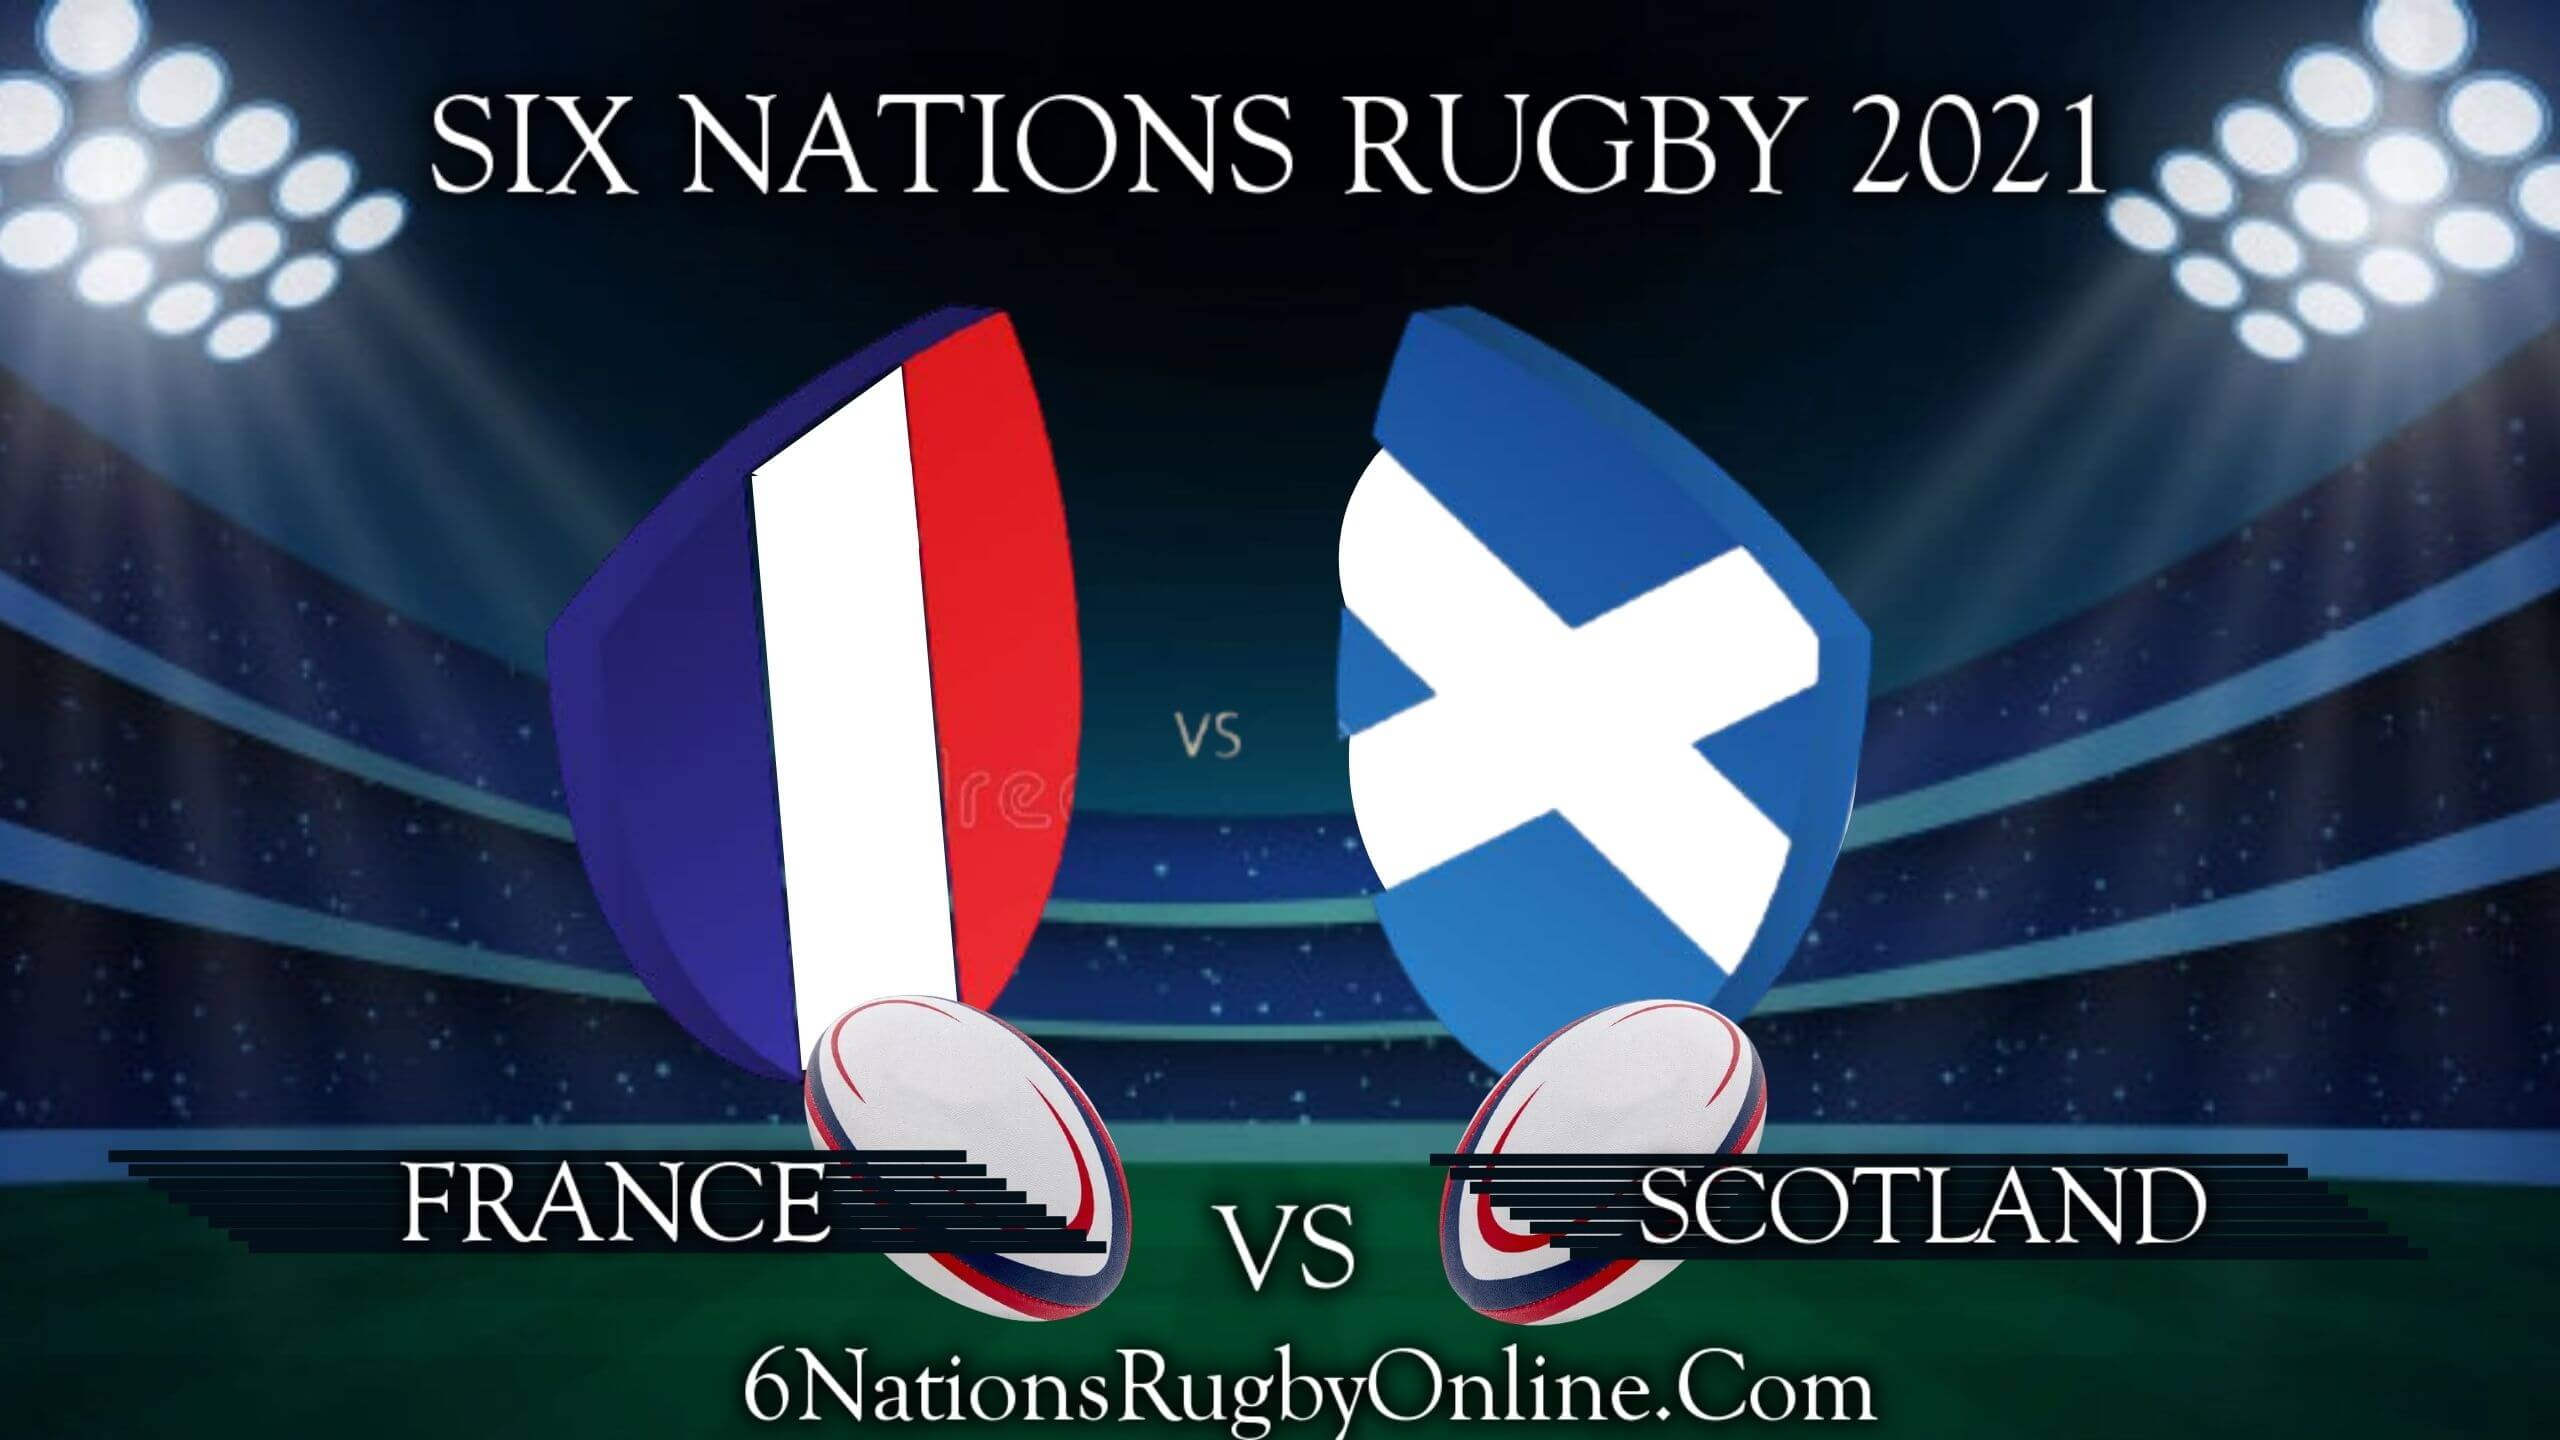 France Vs Scotland Highlights 2021 Six Nations